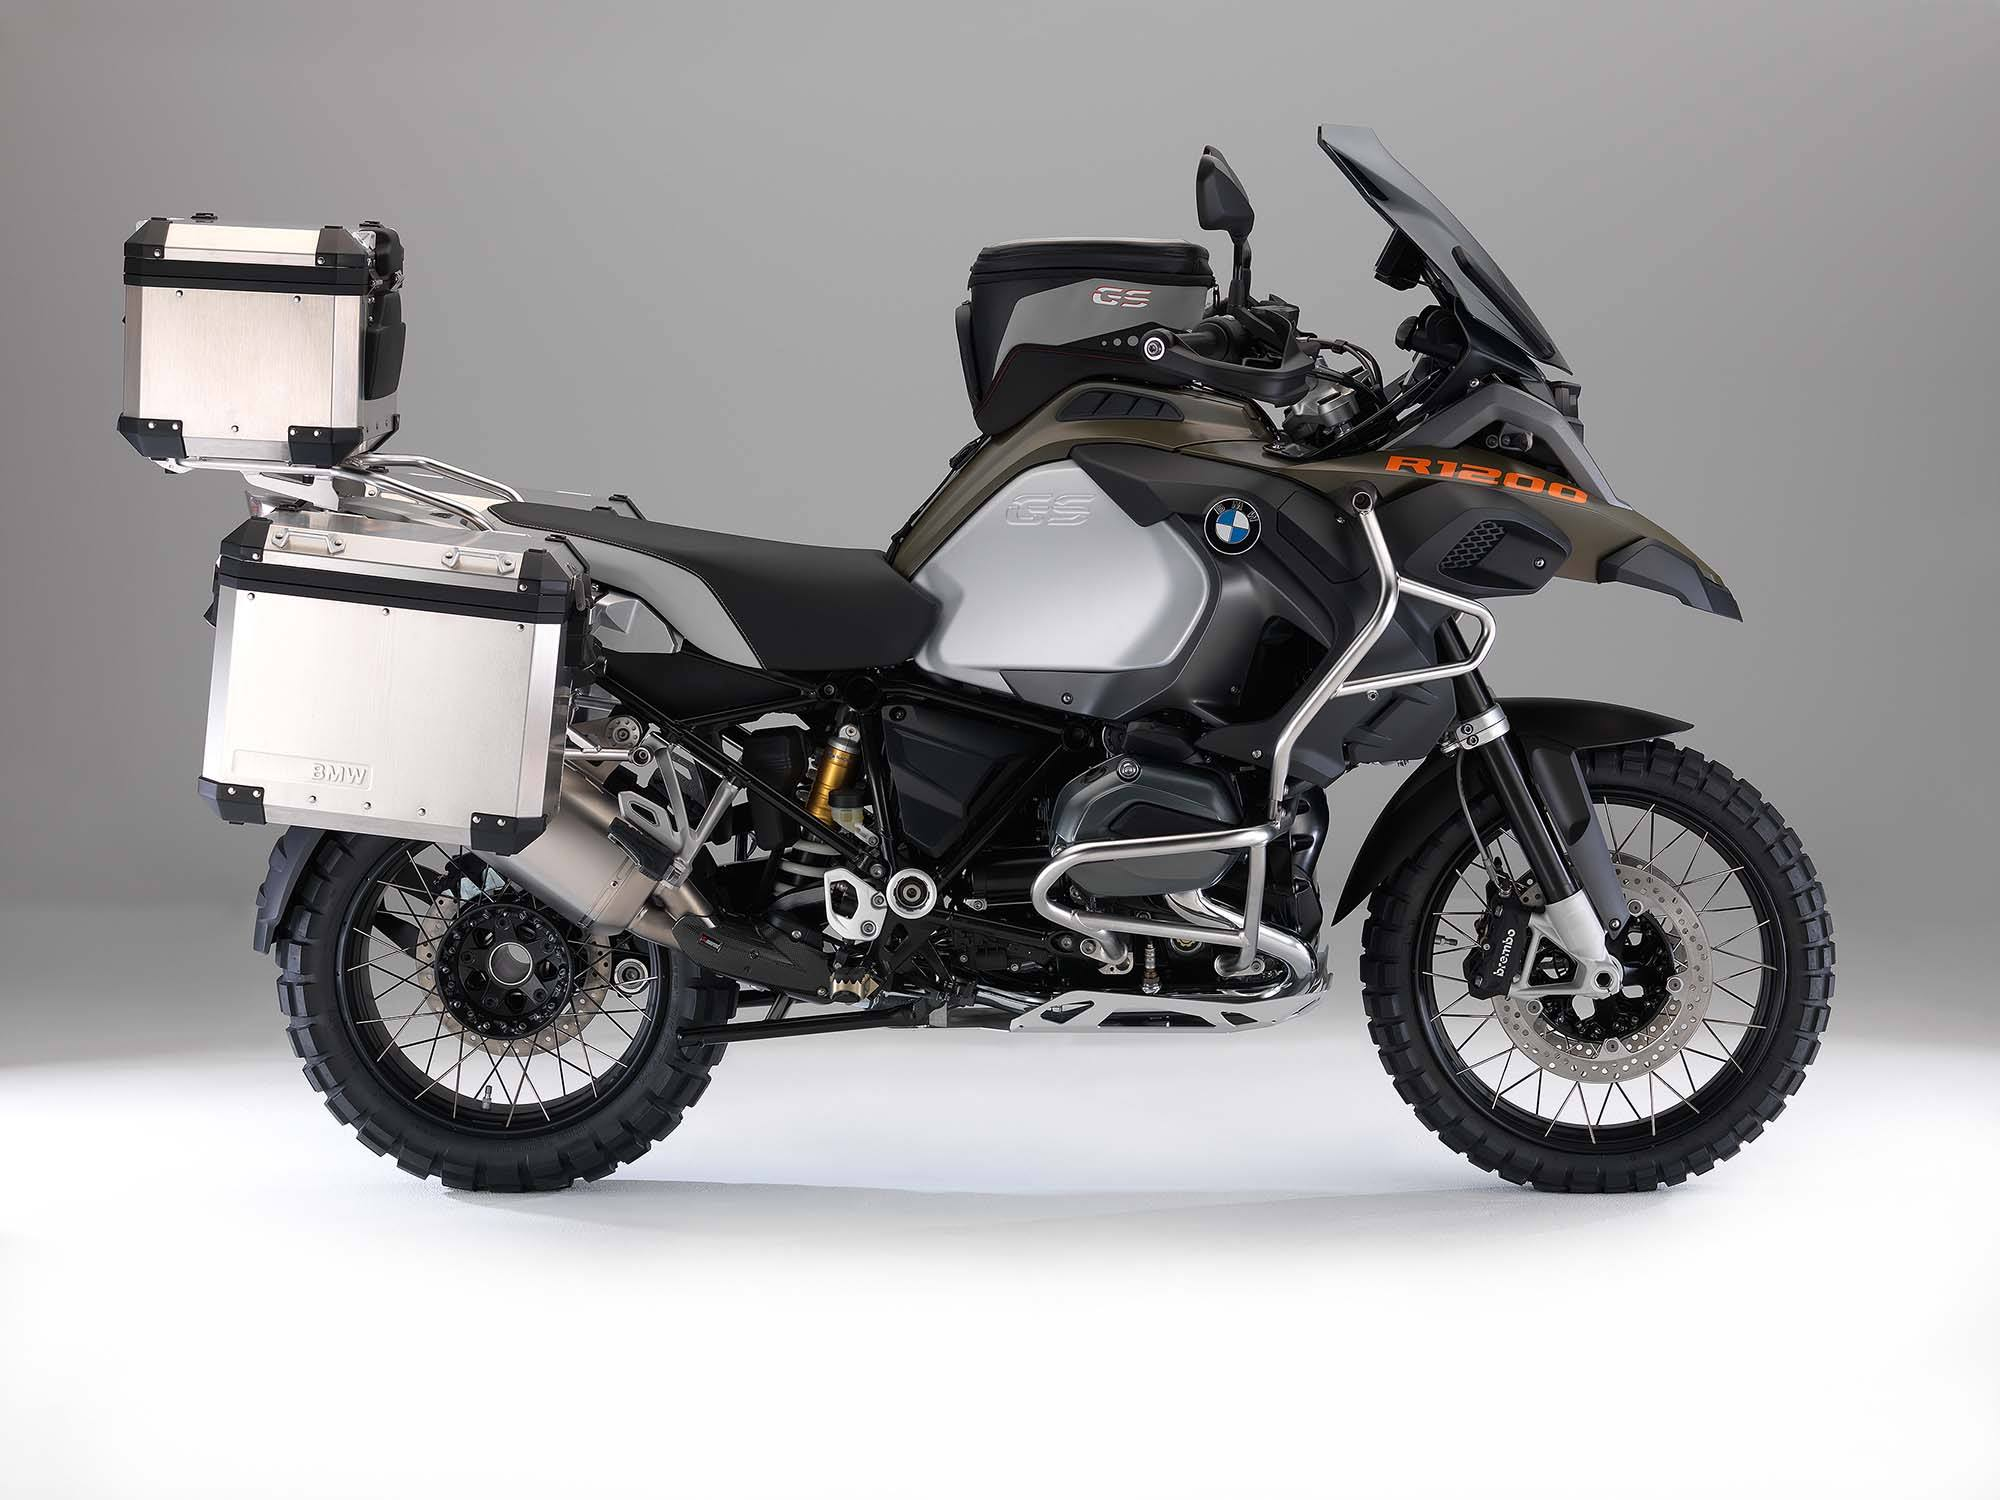 BMW R1200GS Adventure 2014 12650610